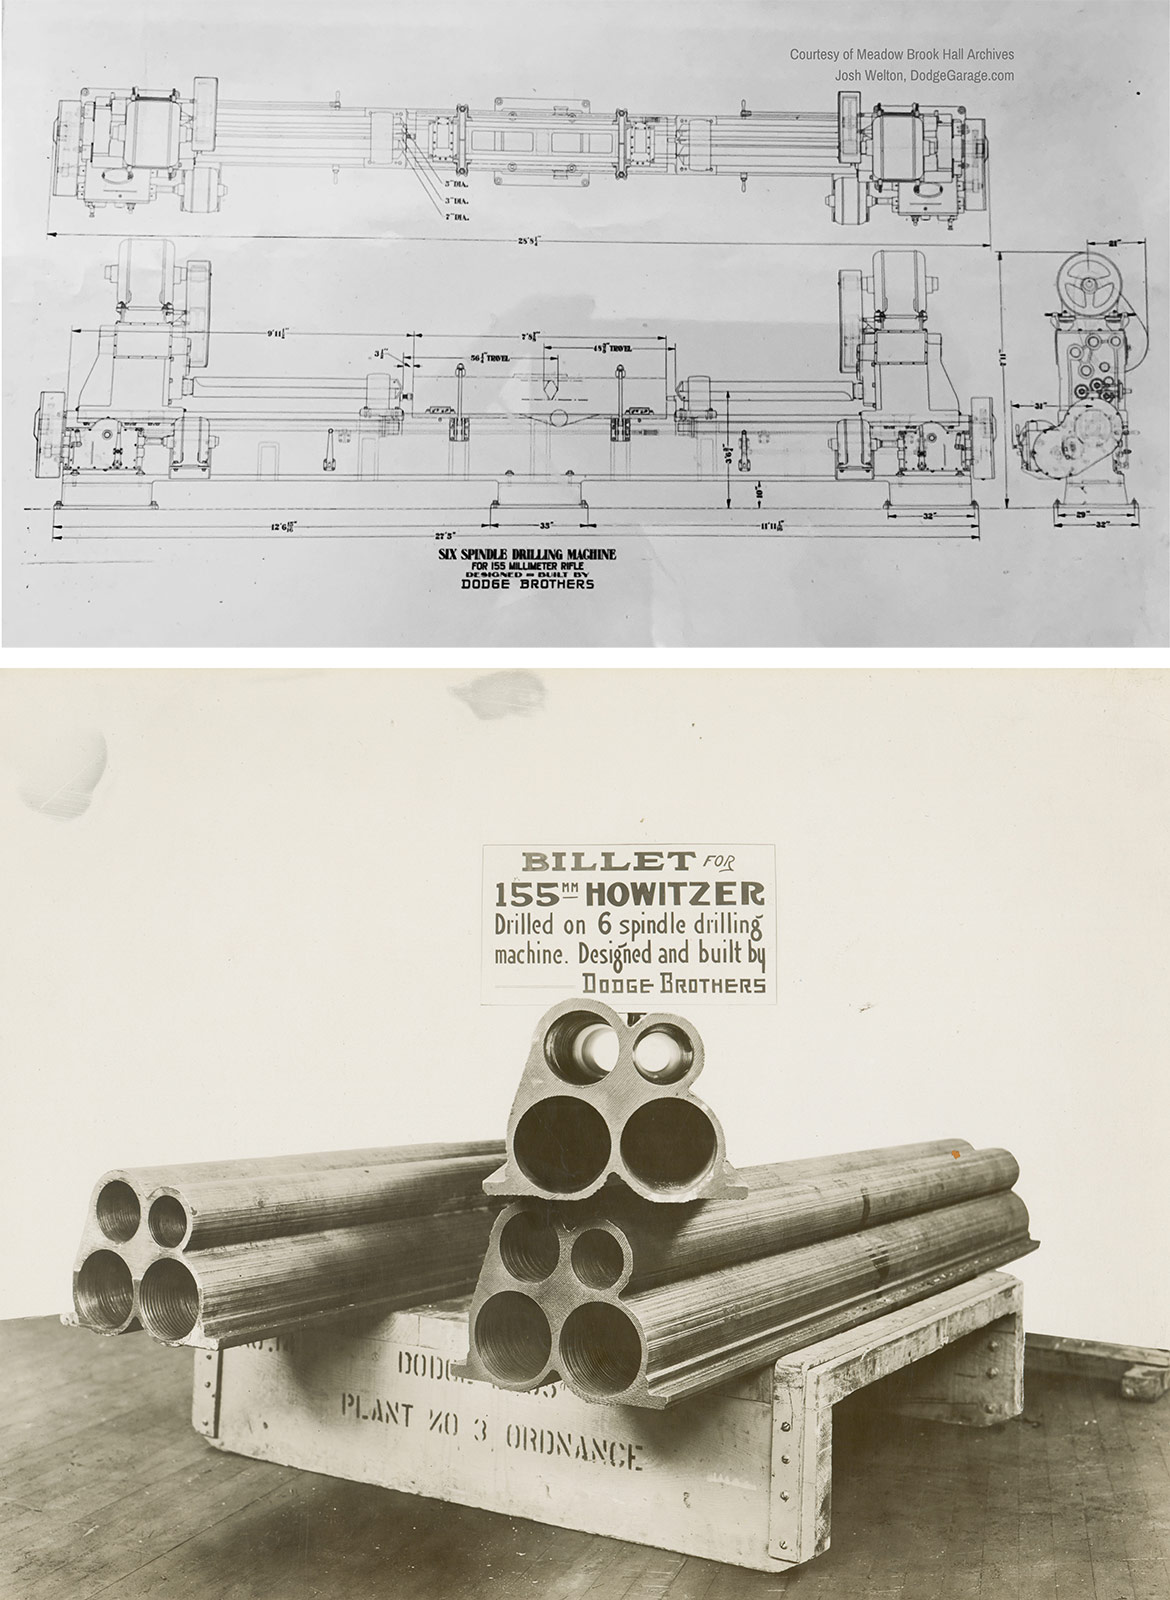 cannon parts and sketches